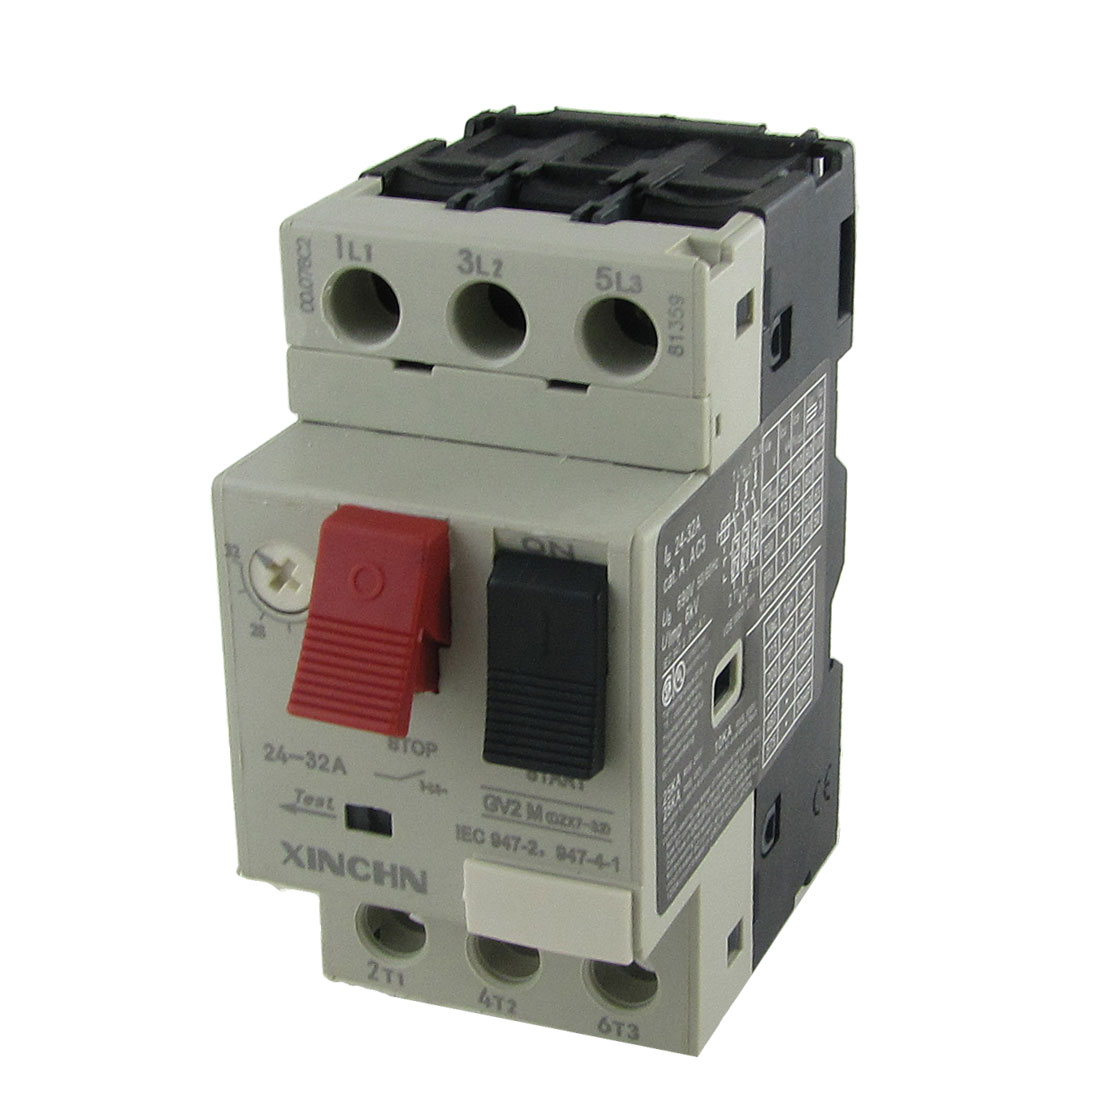 690V 24-32A Thermal Motor Protector Circuit Breaker 3 Pole